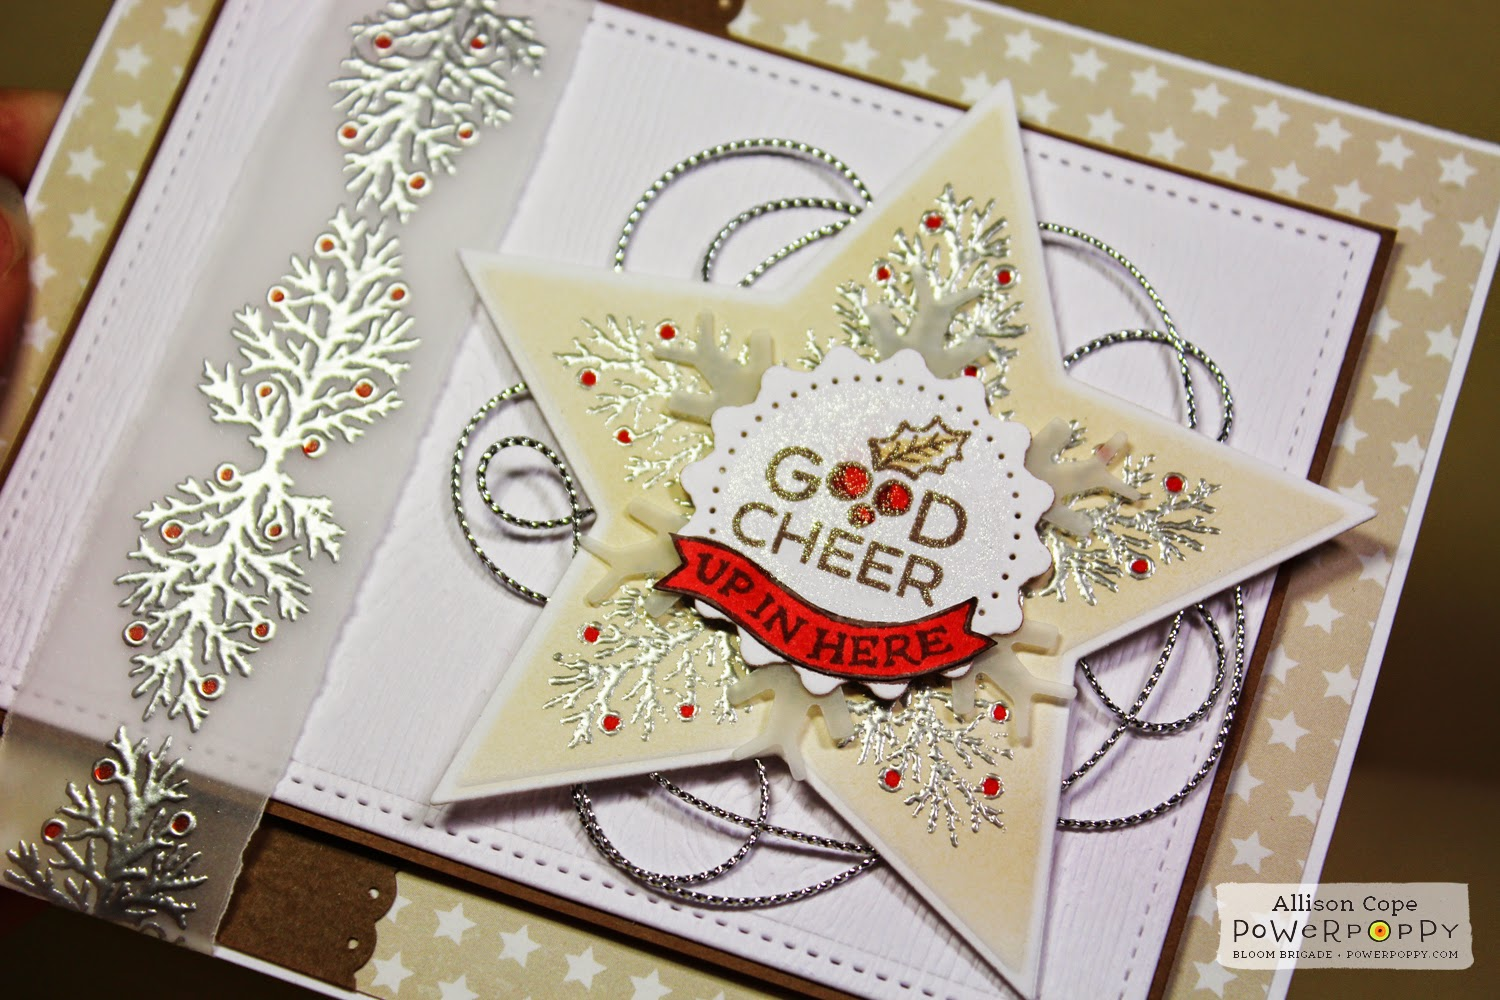 Good Cheer by Allison Cope featuring Power Poppy stamps